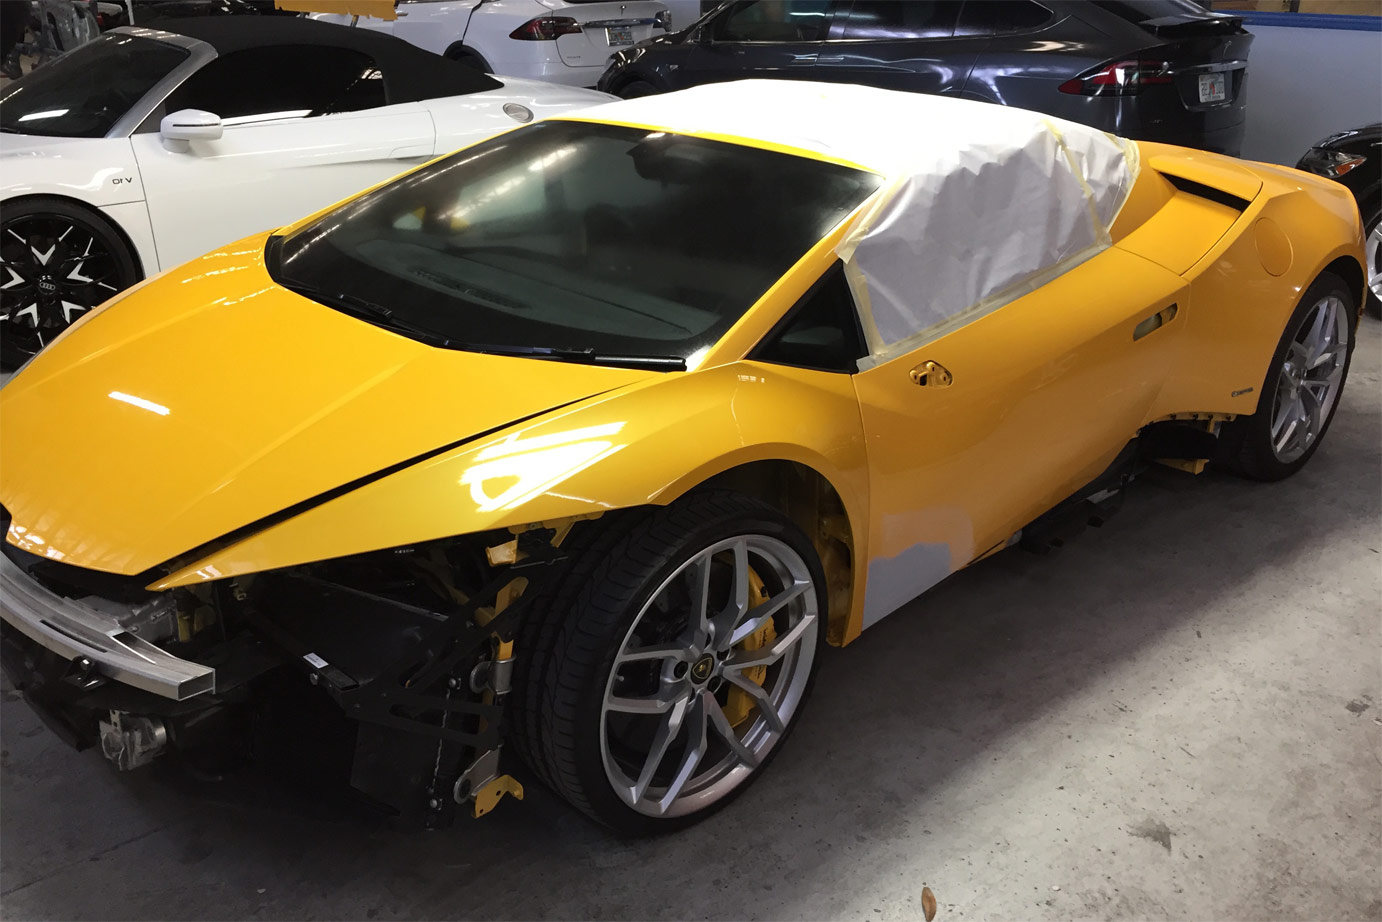 Daya's Lamborghini body shop repairs